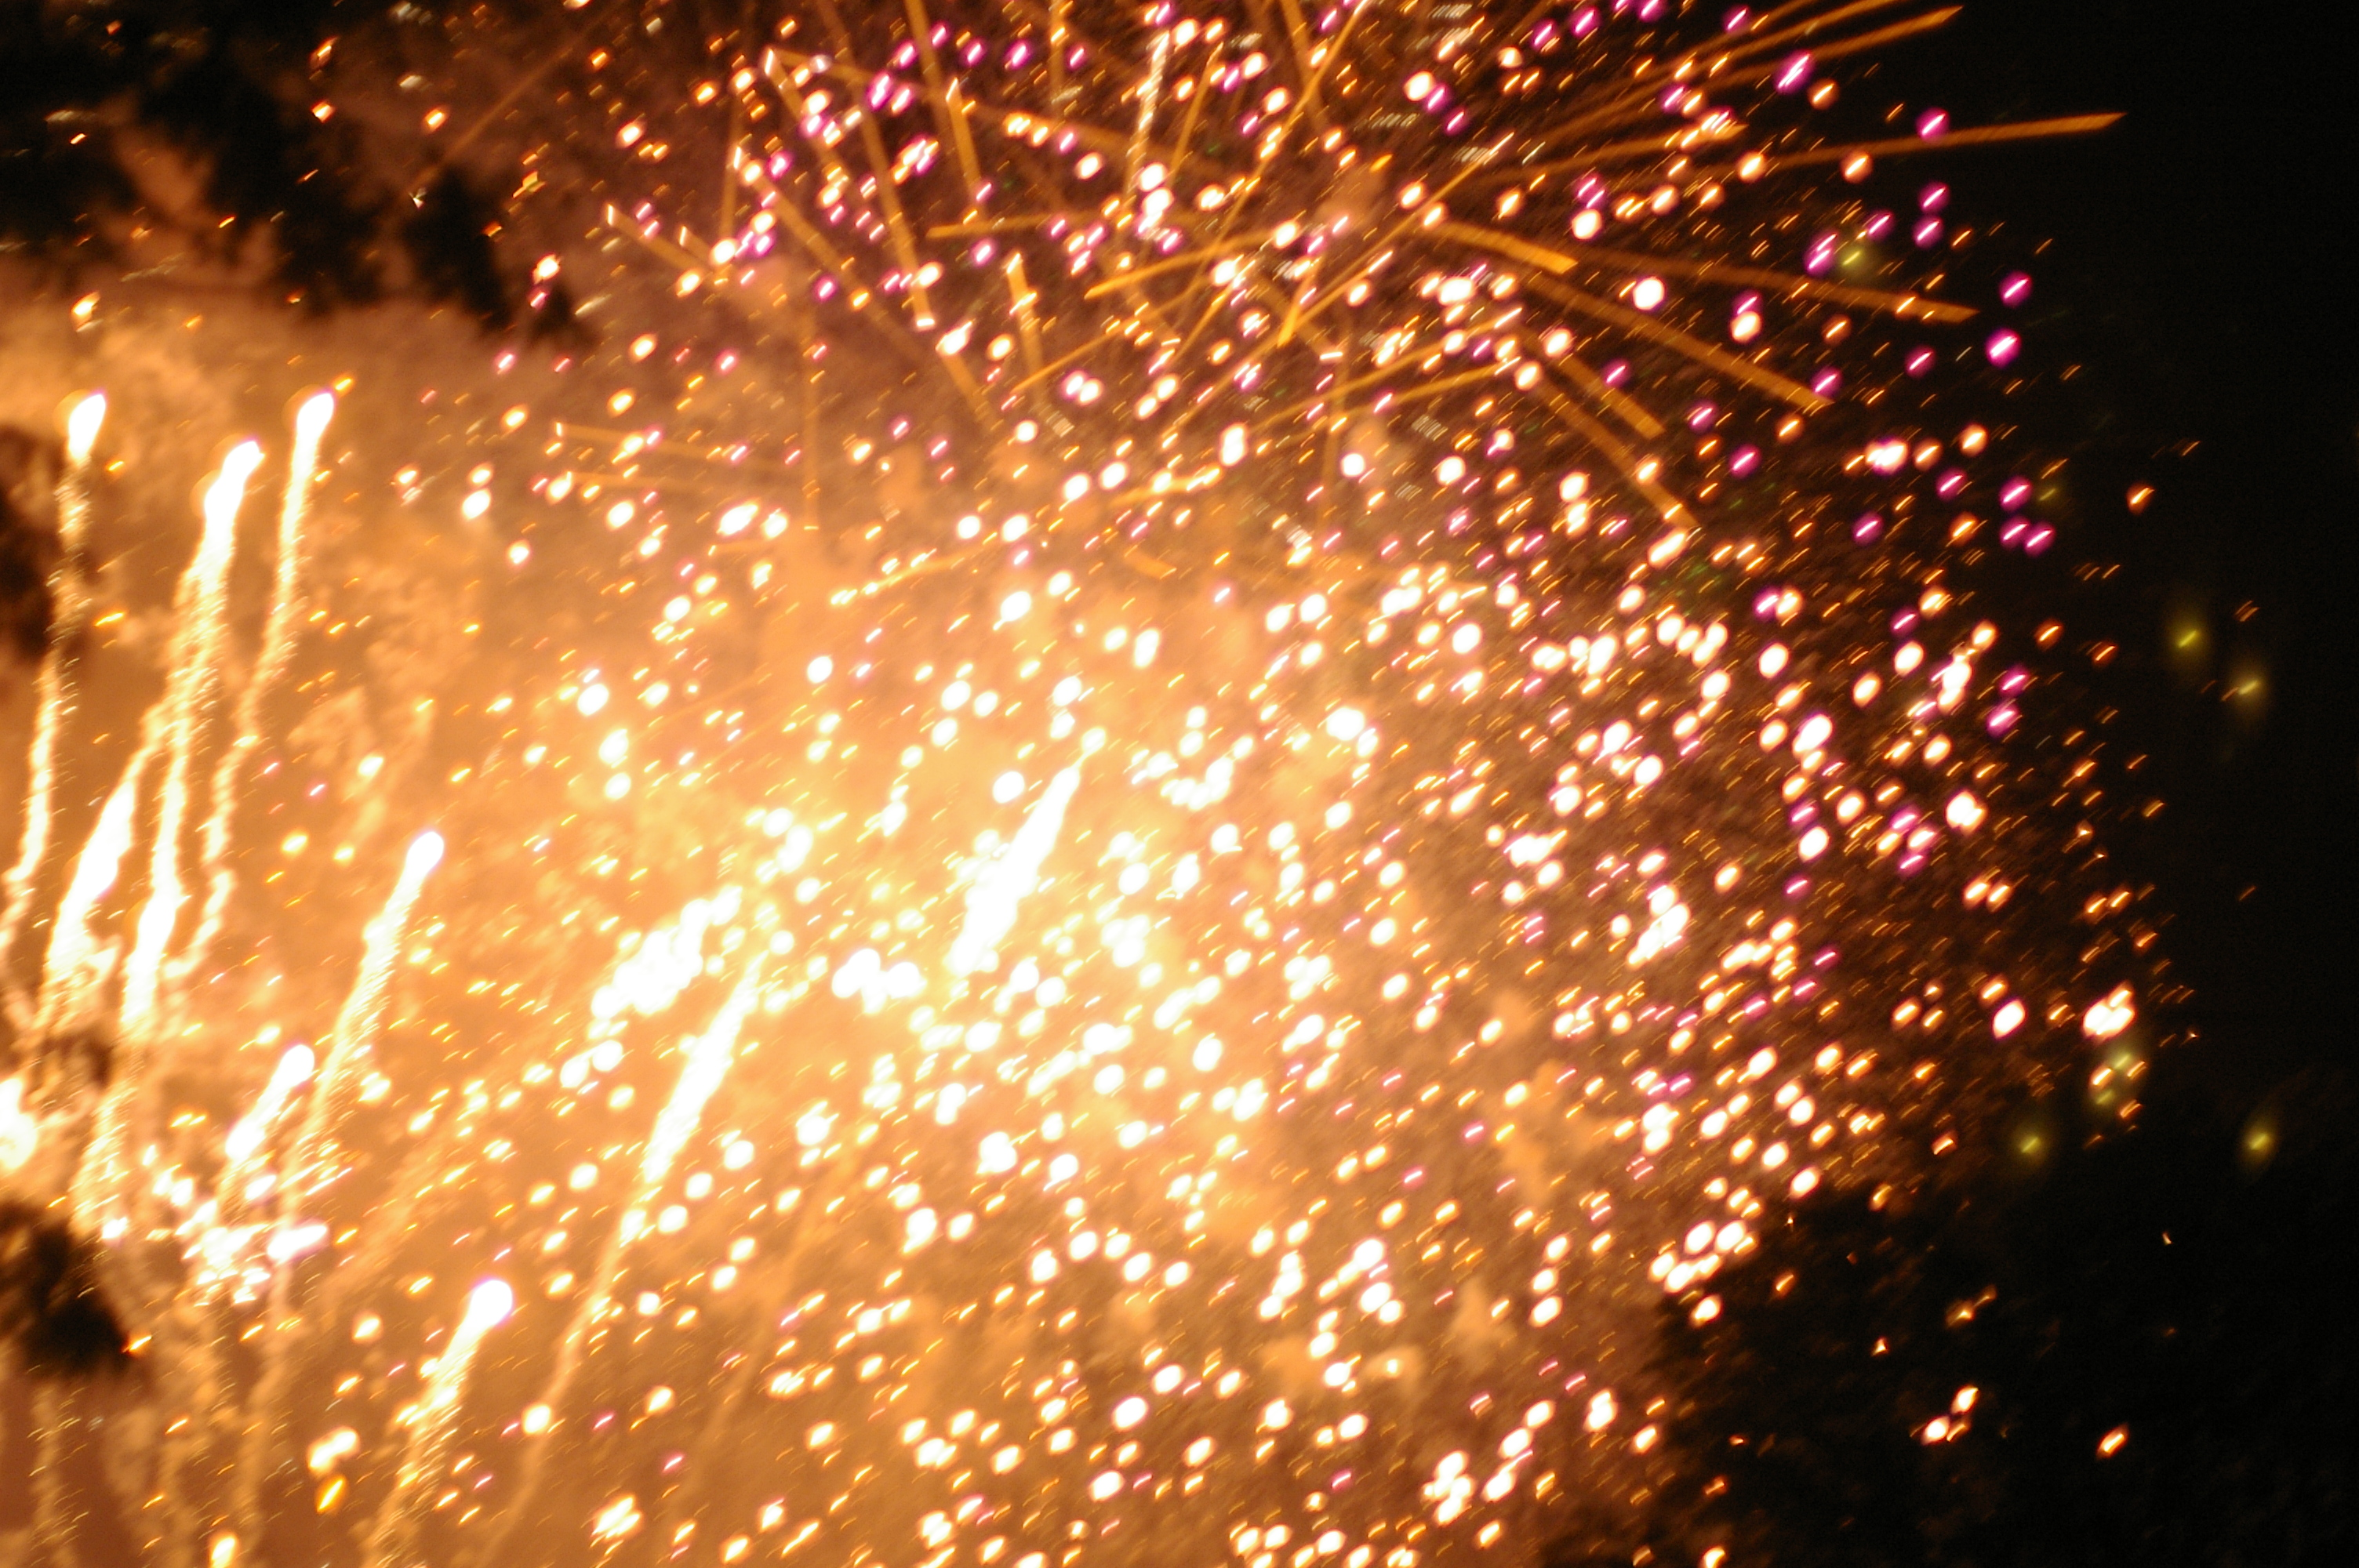 a firework display of yellow glowing sparks